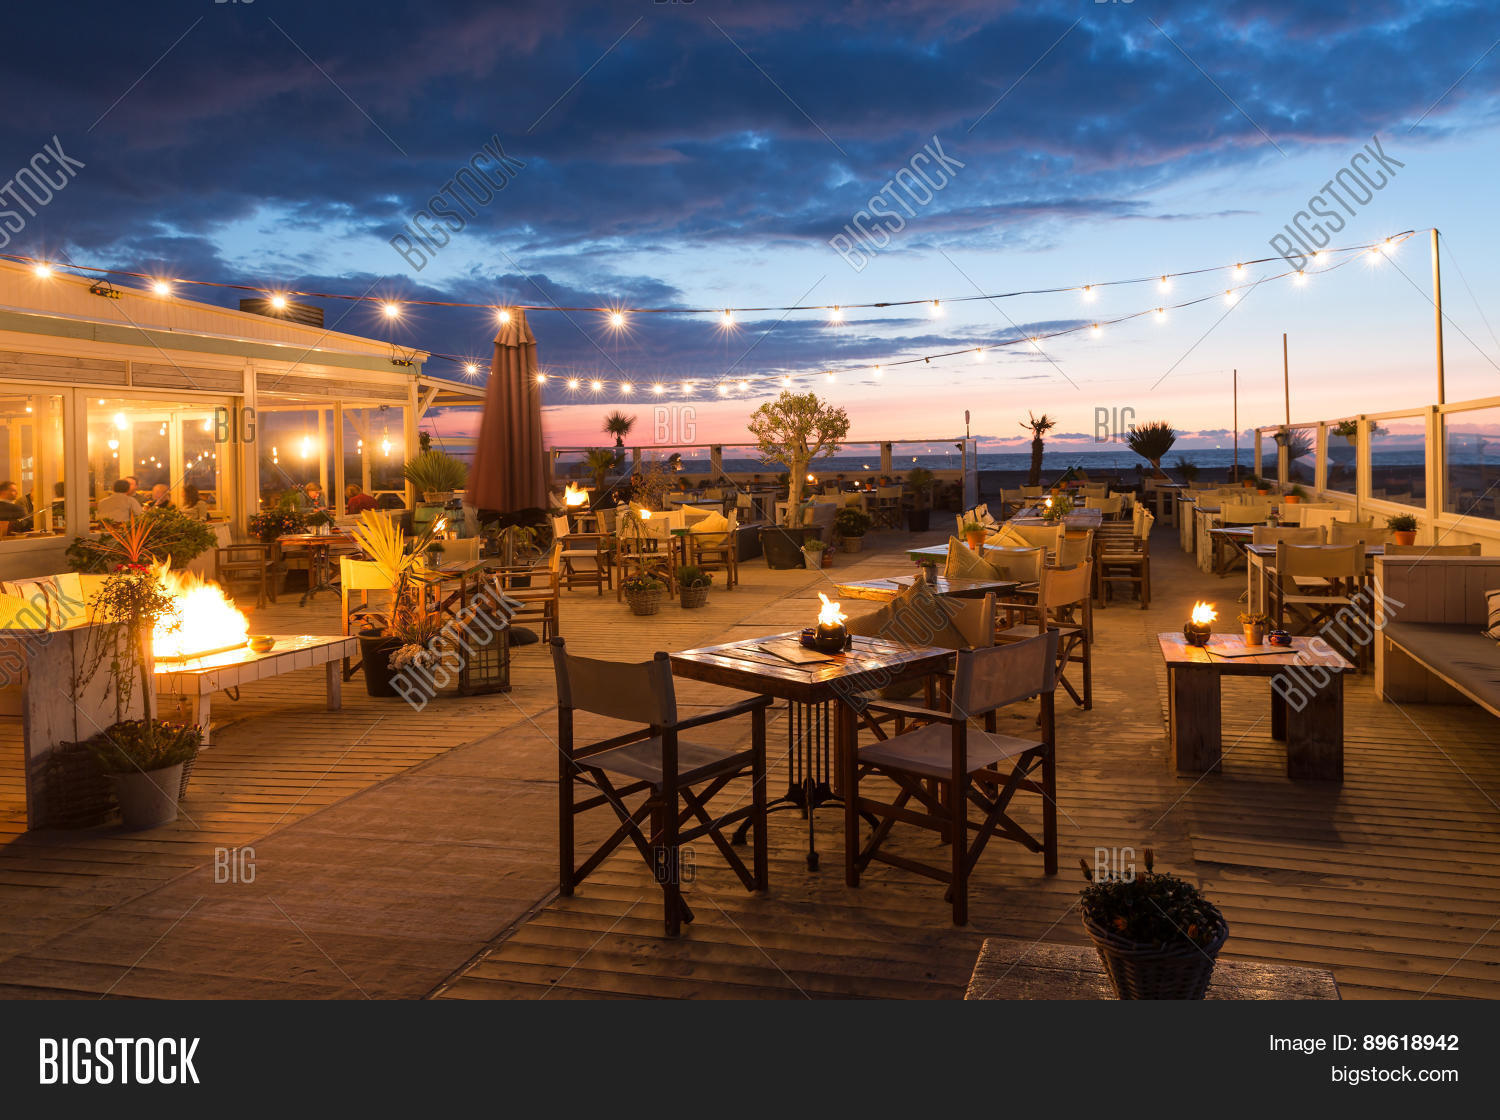 Scheveningen Beach Restaurants Sea Sunset People Image Photo Free Trial Bigstock